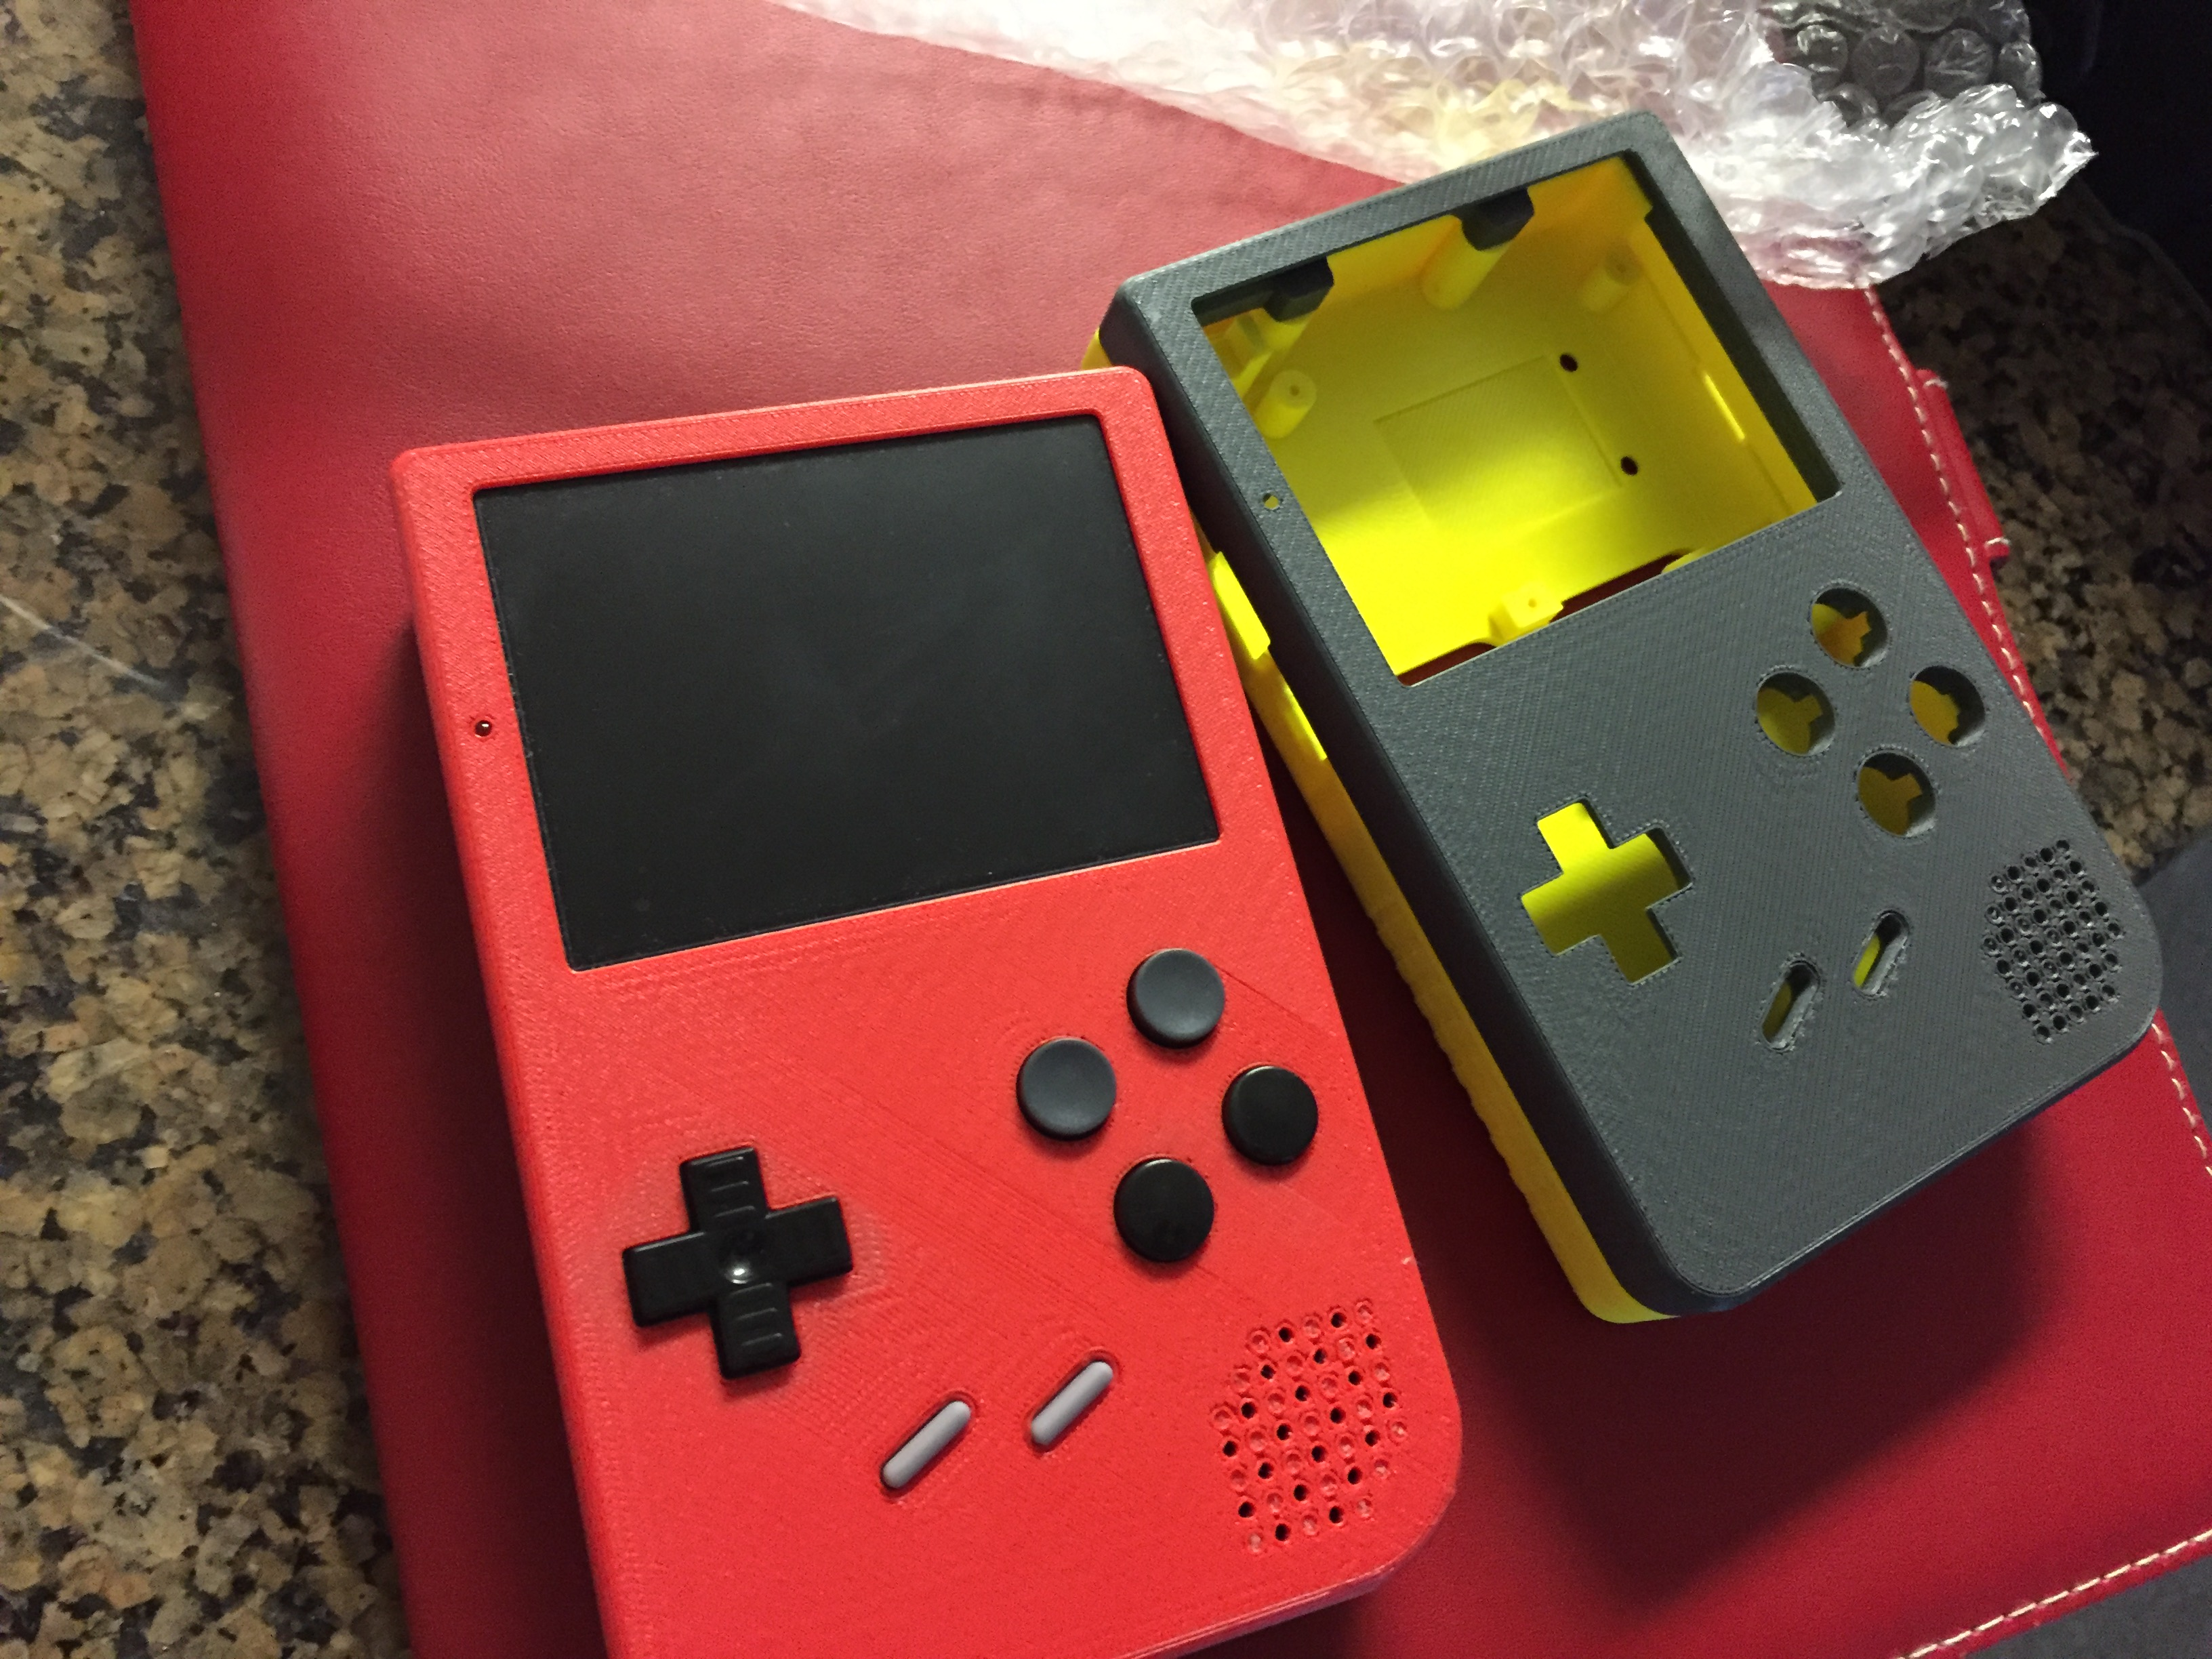 An early prototype next to the final versions